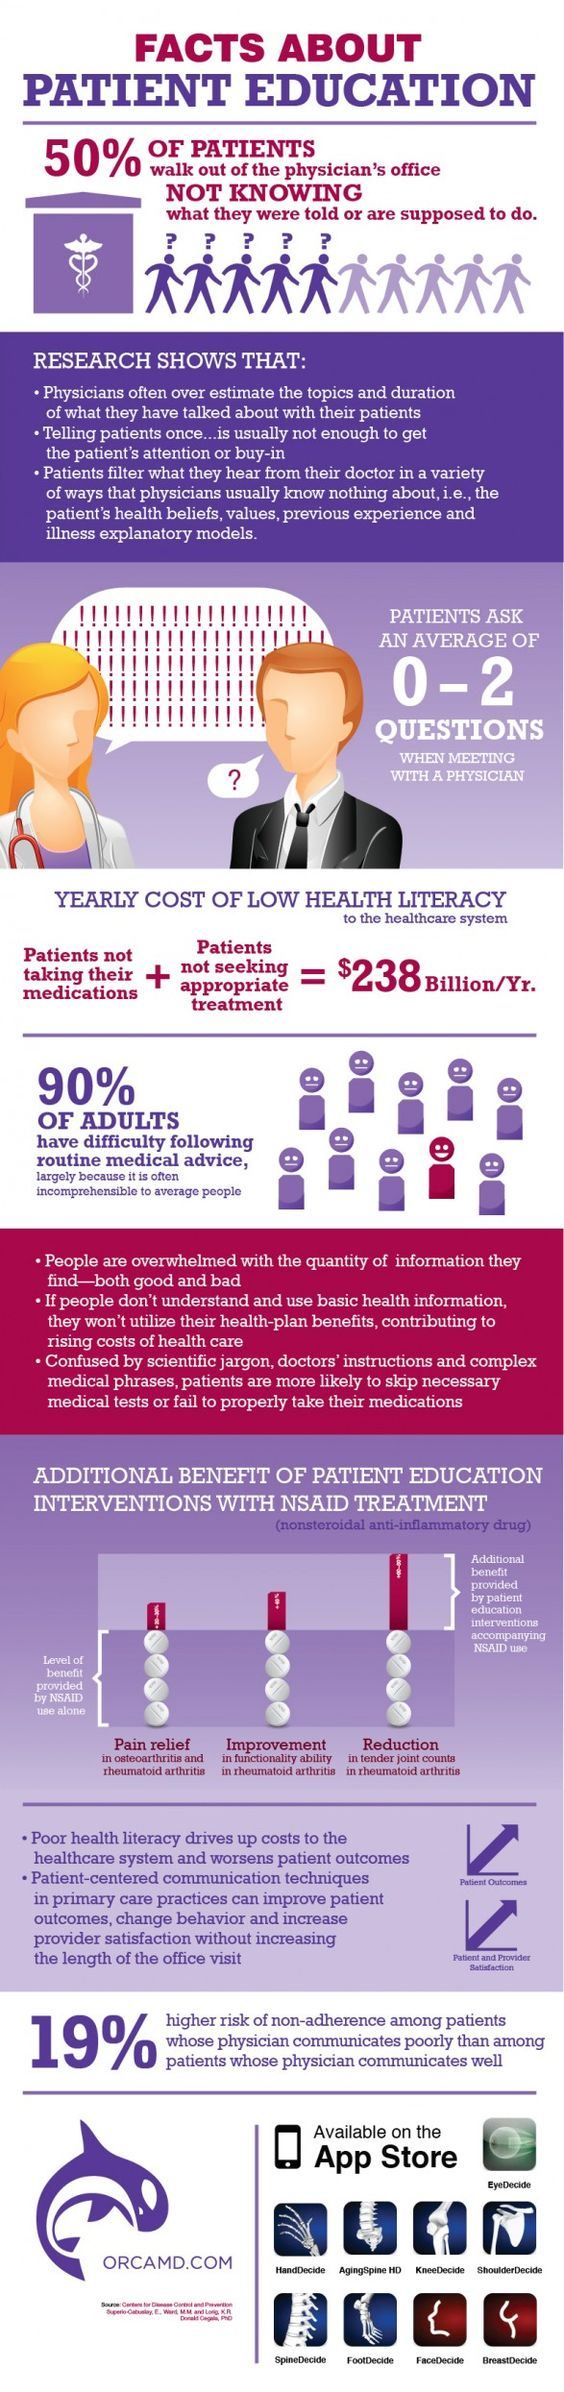 Cost/Benefits and importance of patient education #infographic #healthcare www.pfh.org Find us on Twitter and Facebook!: